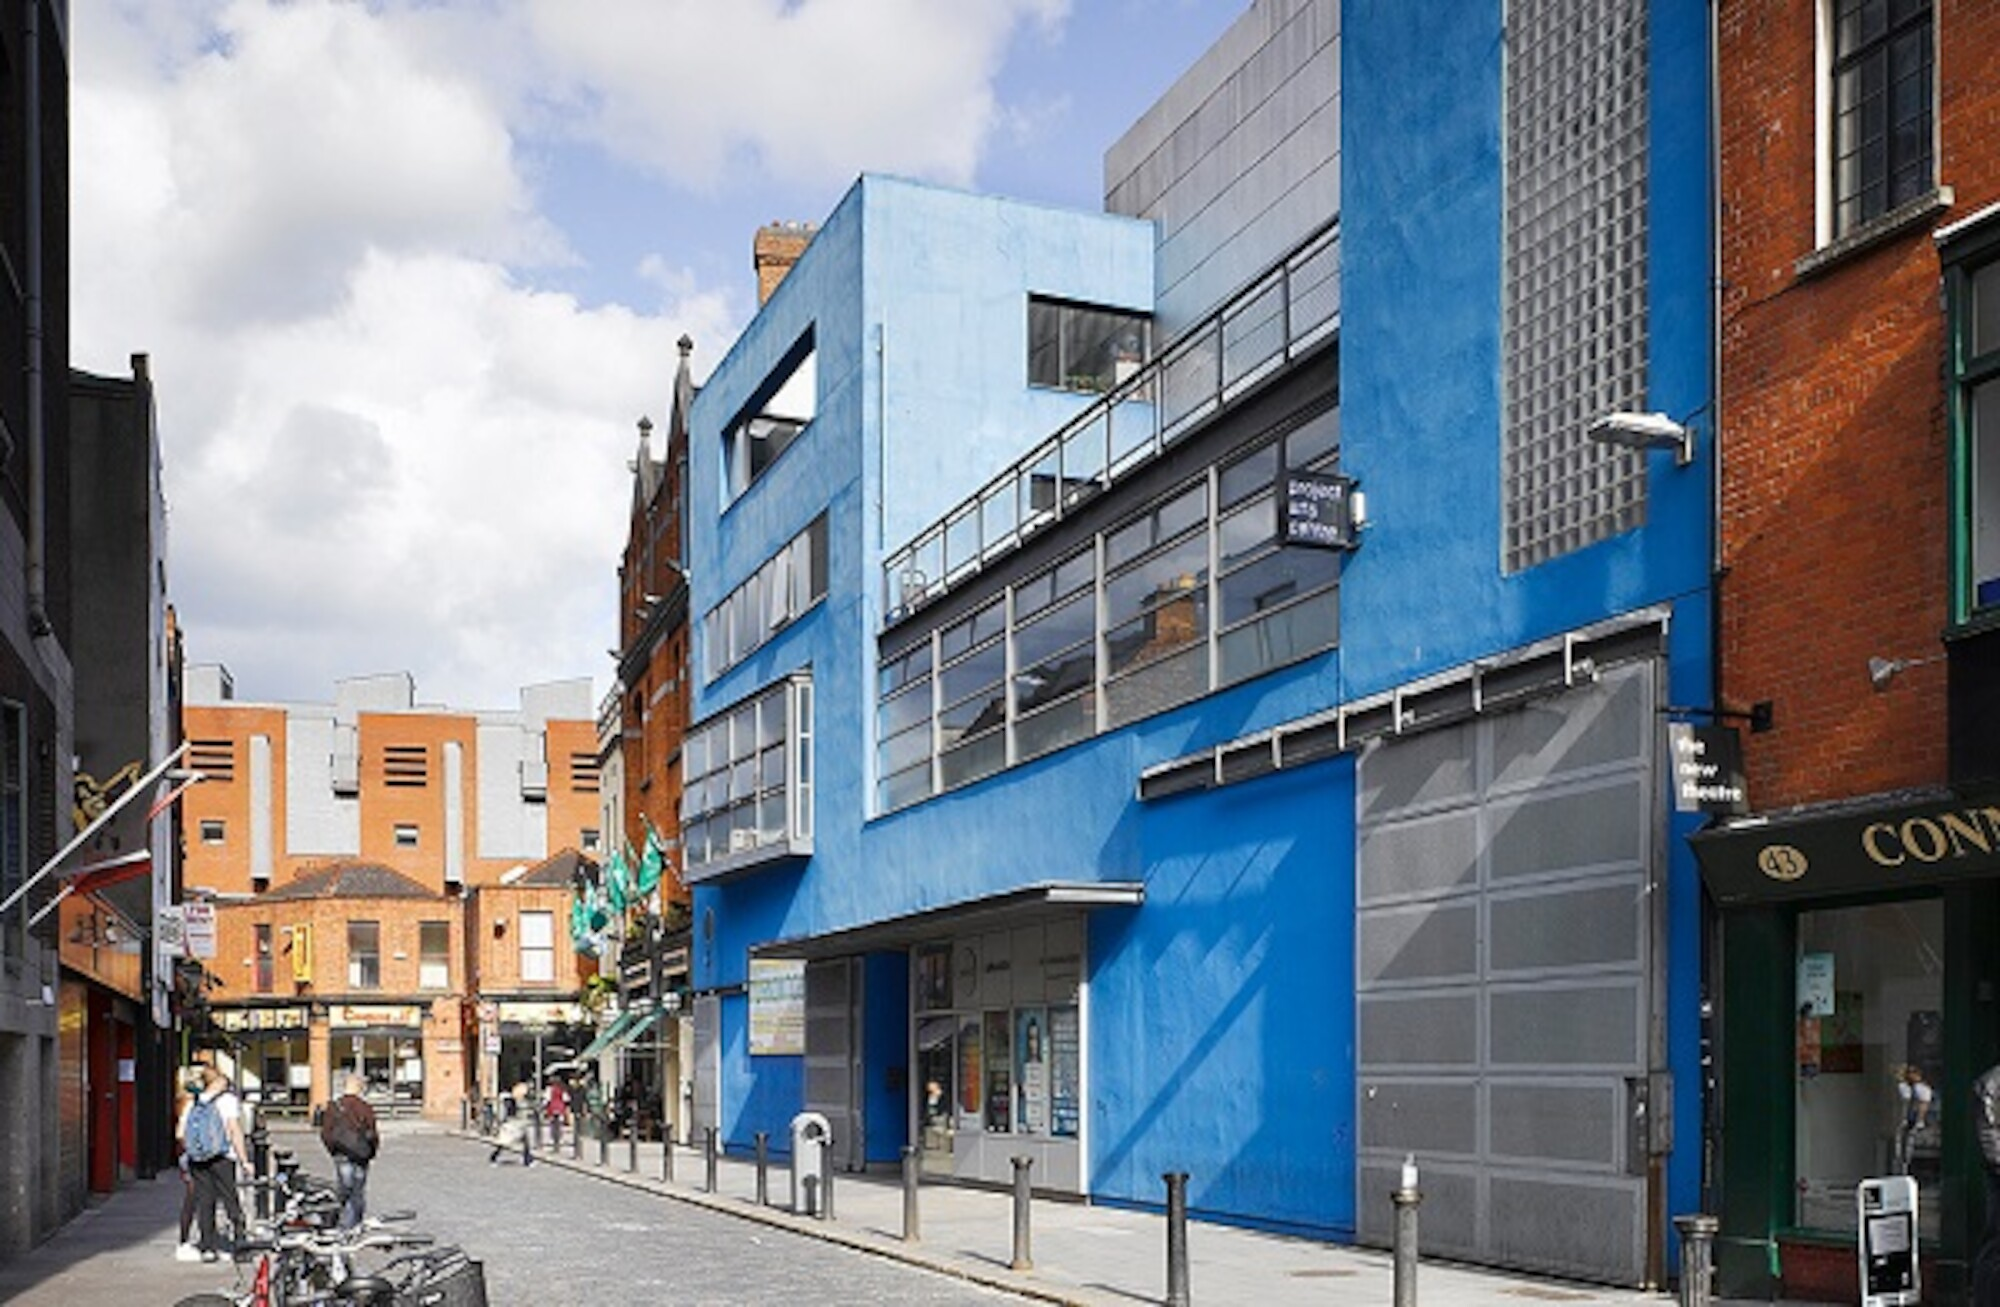 job opportunity curator of visual arts at project arts centre job opportunity curator of visual arts at project arts centre